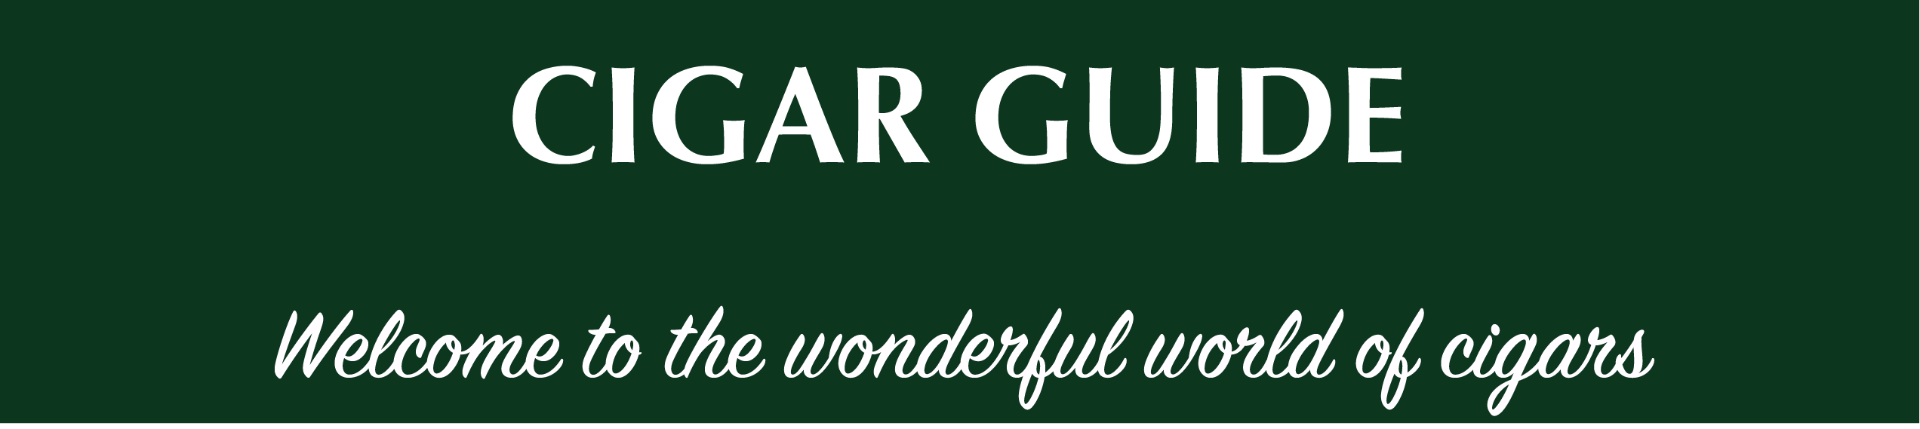 Cigar guide header with text